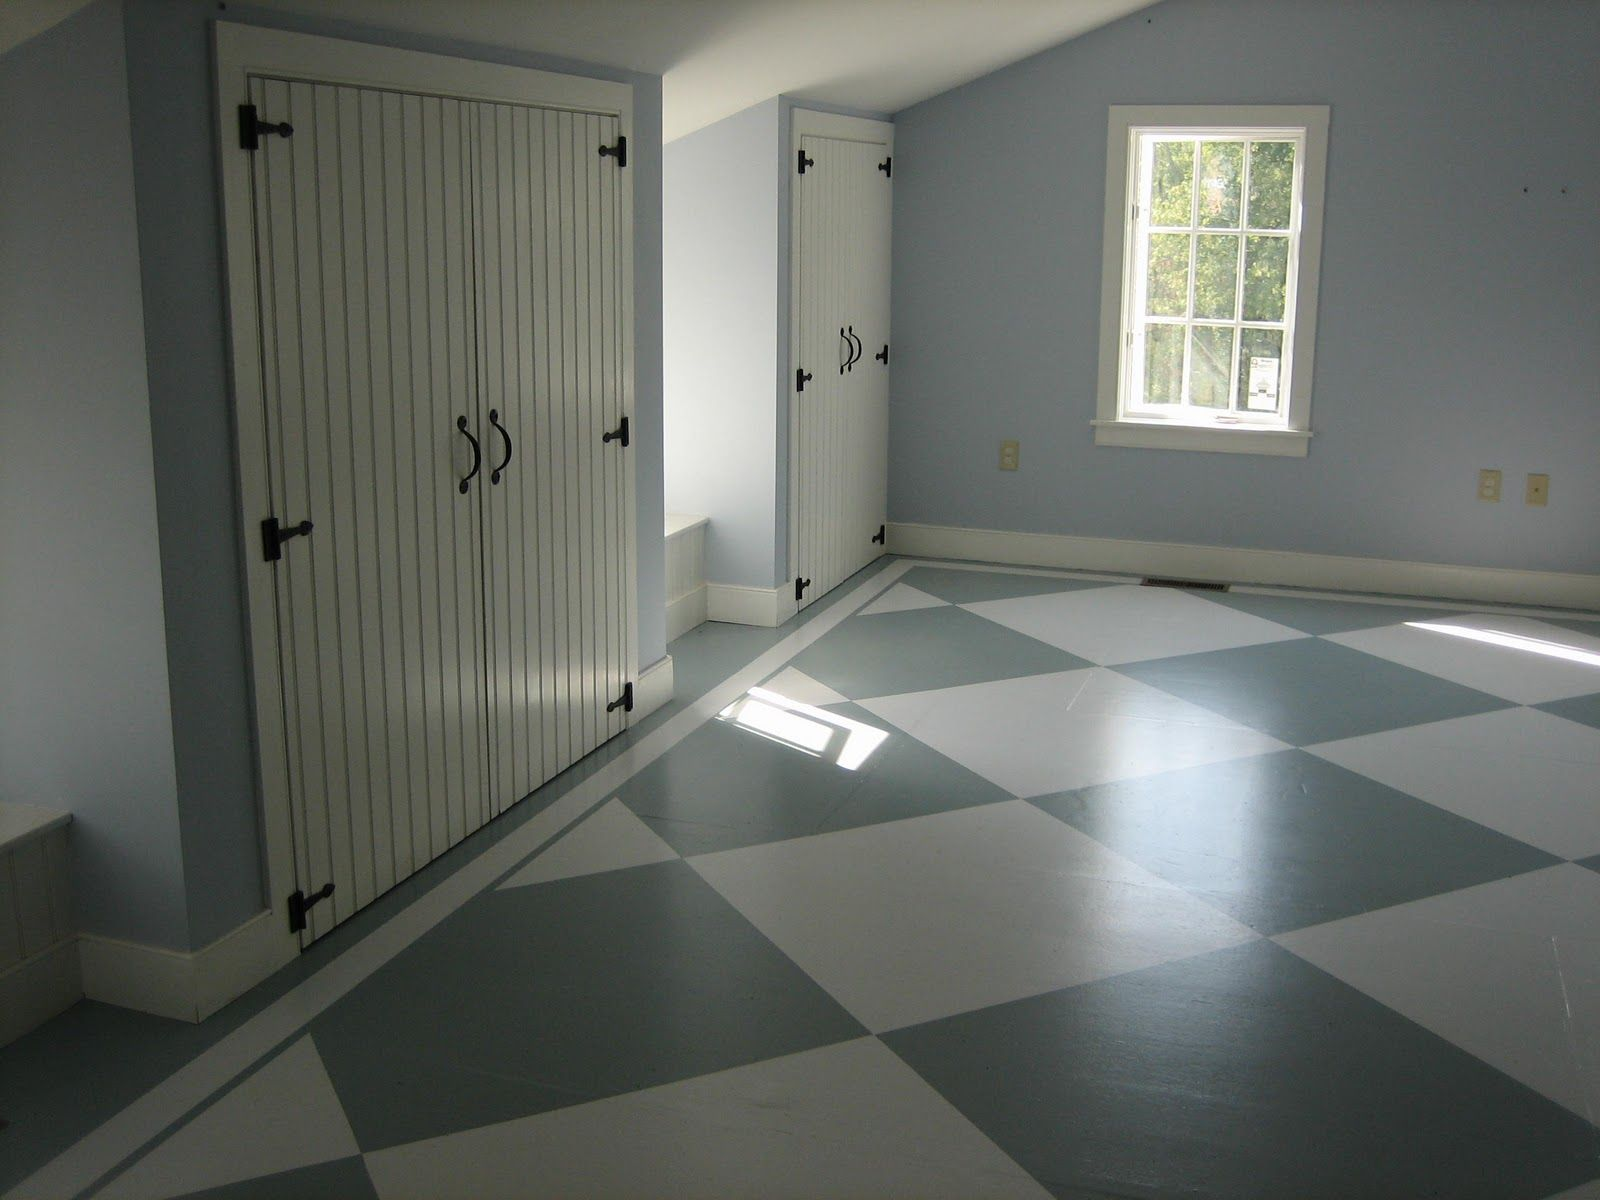 Best 25 painted plywood floors ideas on pinterest for Painting plywood floors ideas